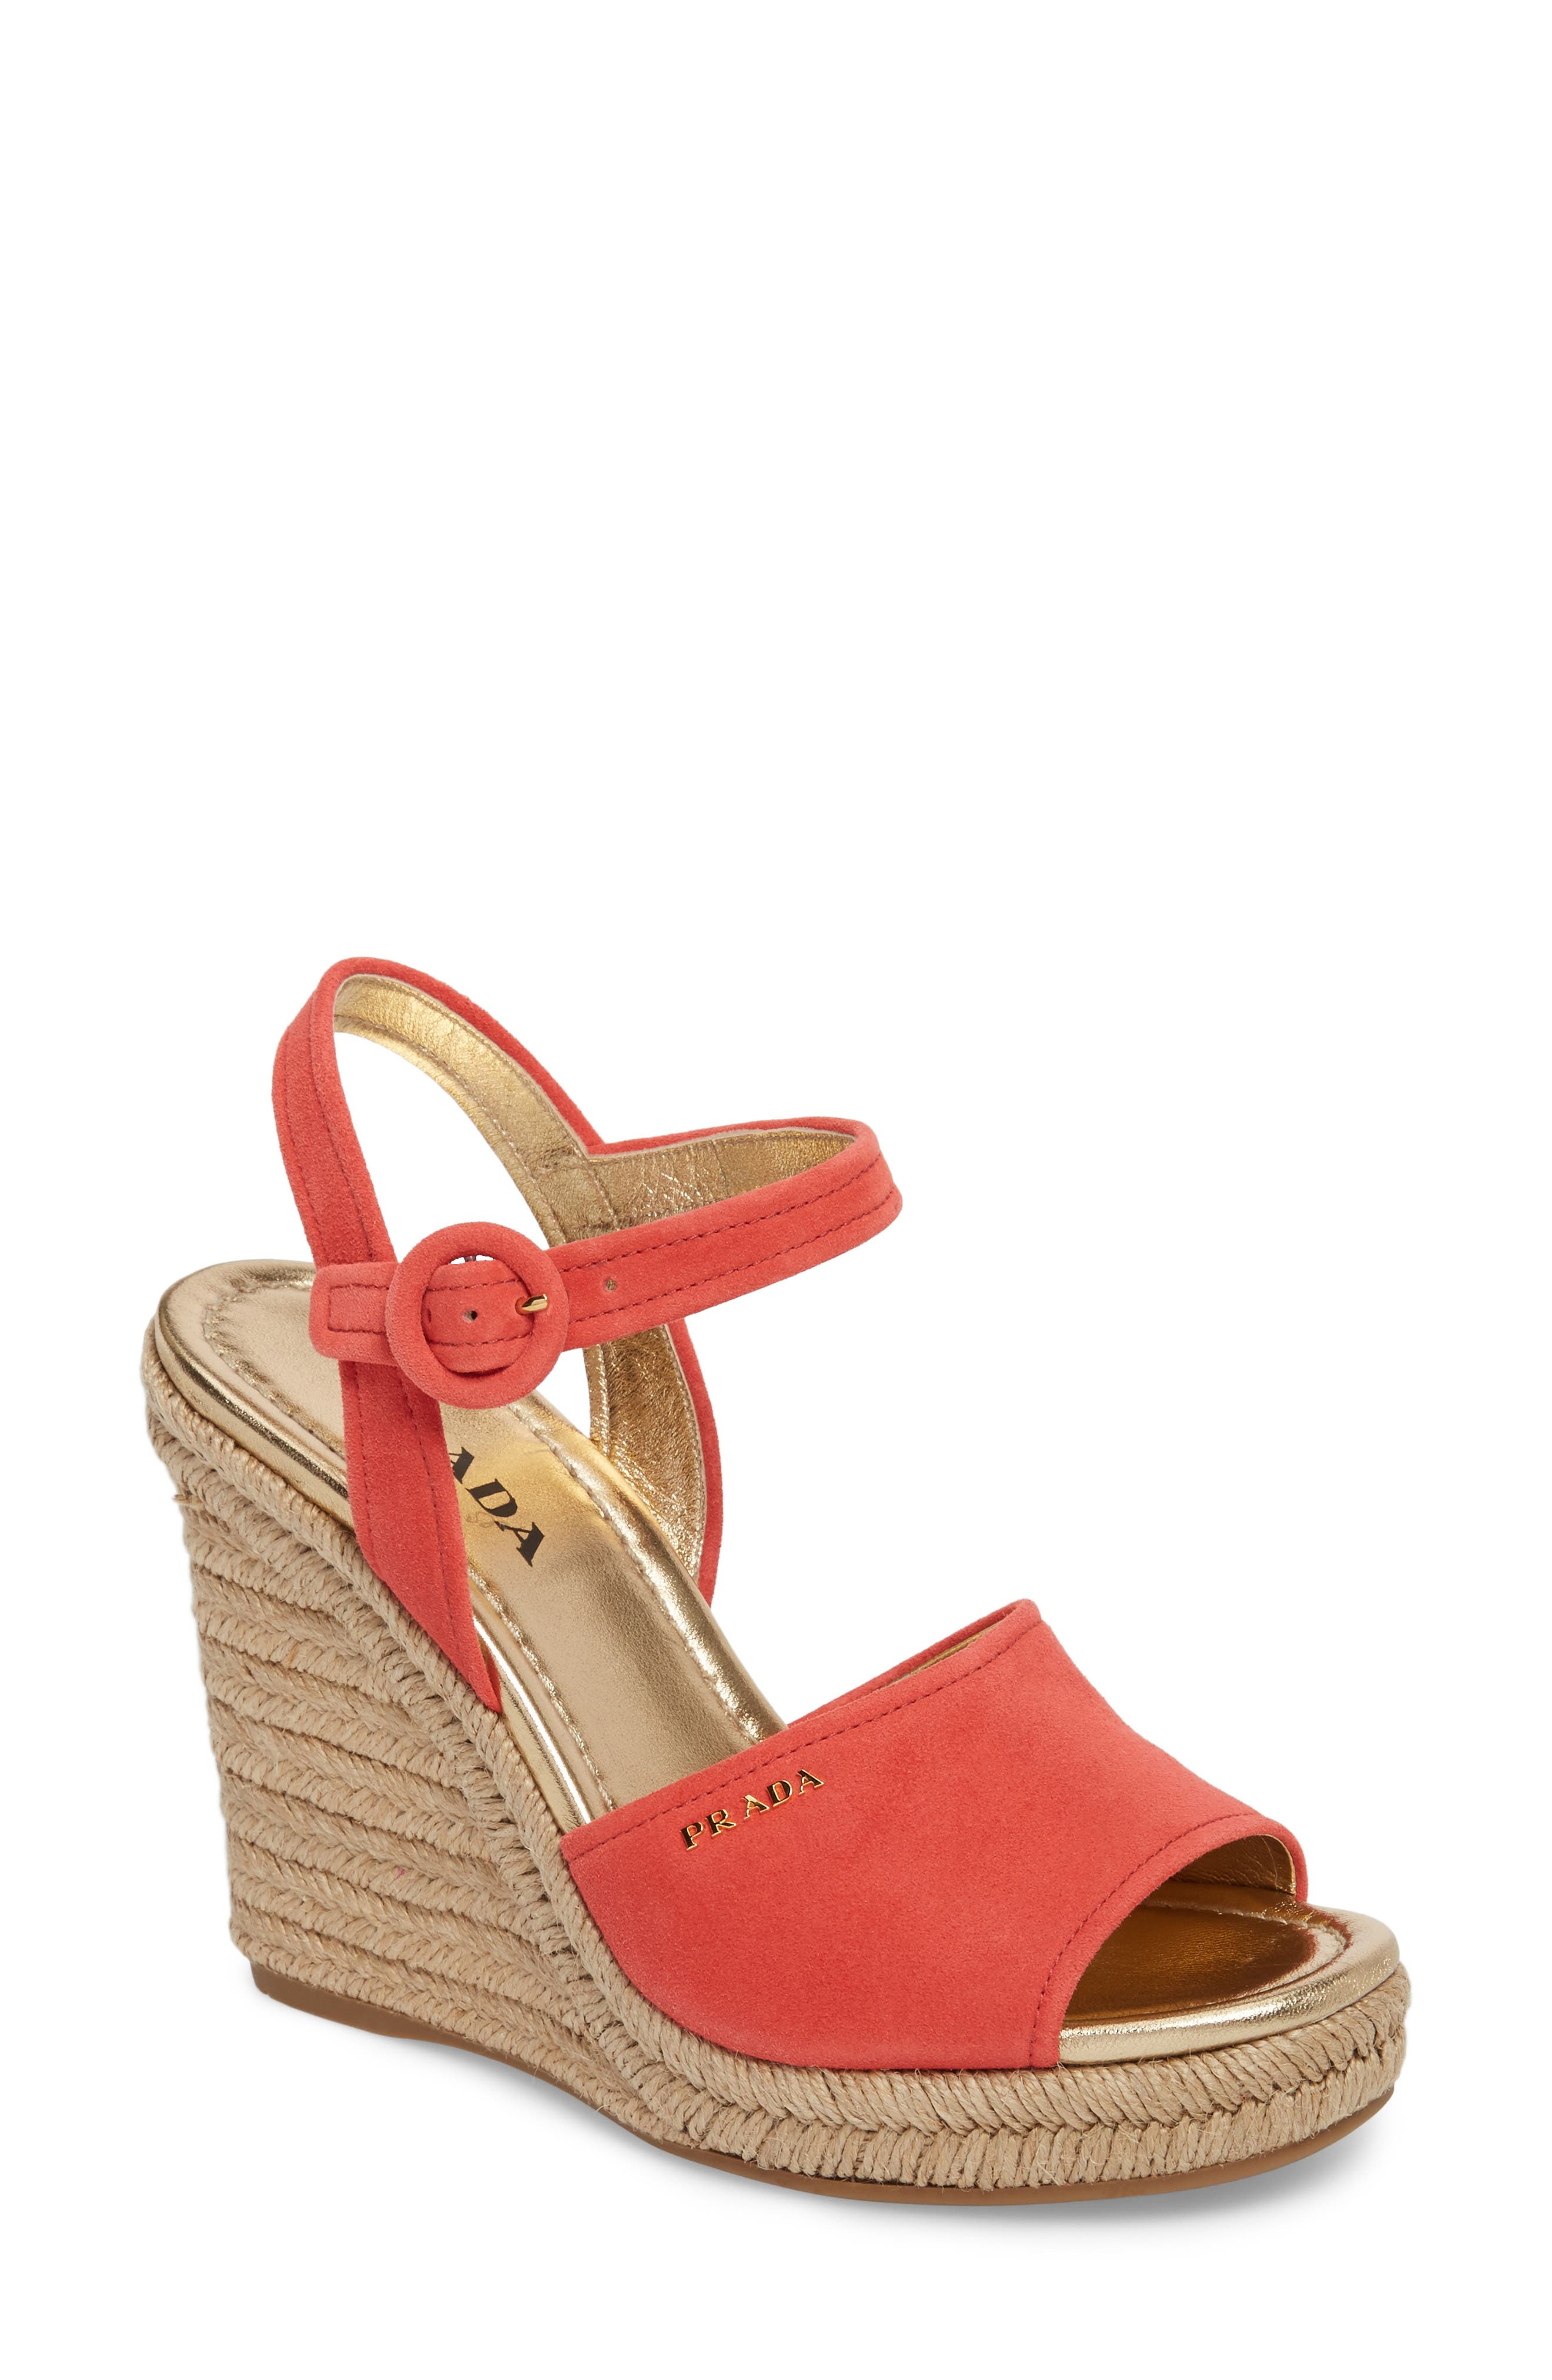 Espadrille Wedge Sandal,                             Main thumbnail 1, color,                             Red